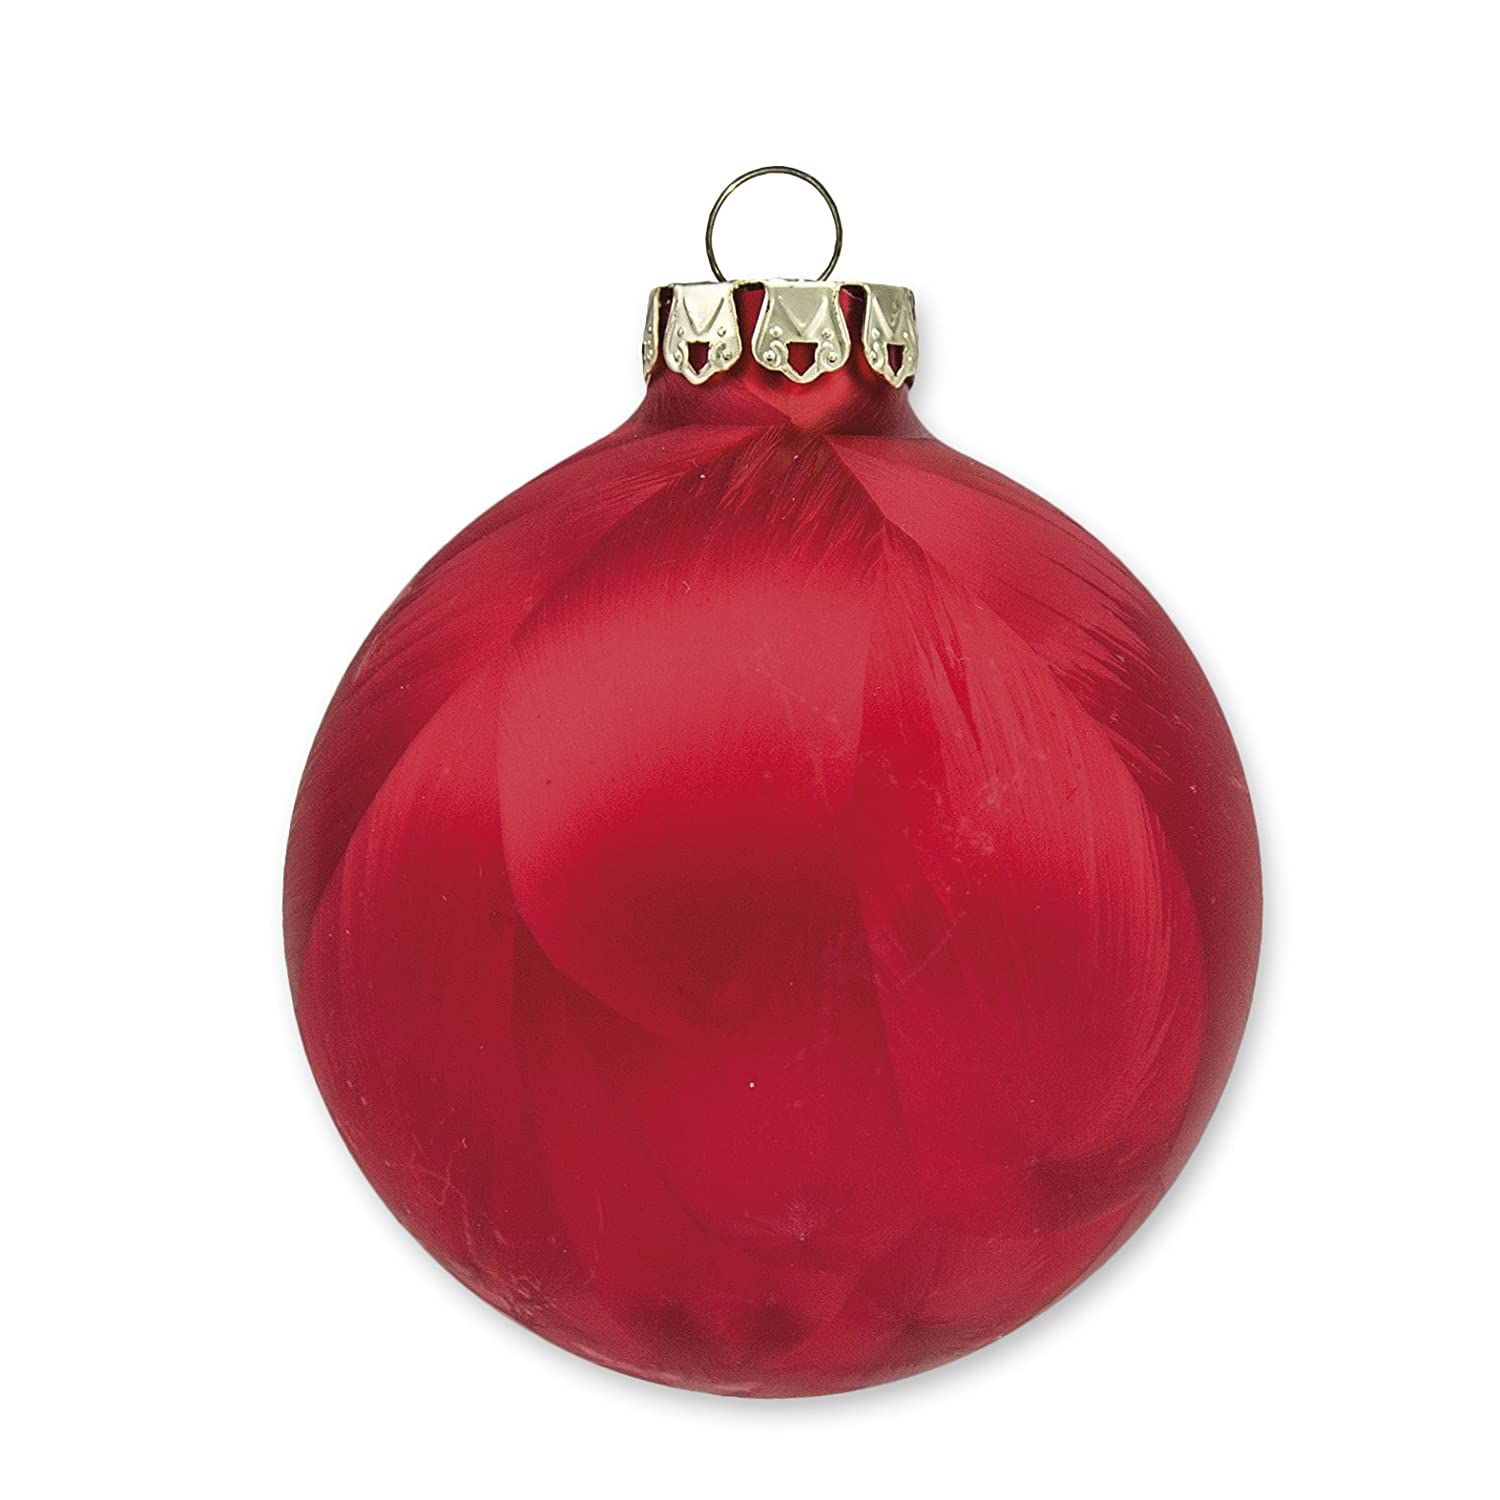 Ice-Red Collection 6x8cm Glass Christmas Balls 6x7cm Handmade Christmas Ornaments 2.75 2.35 3.15 Made in Germany 18 pc Set 6x6cm